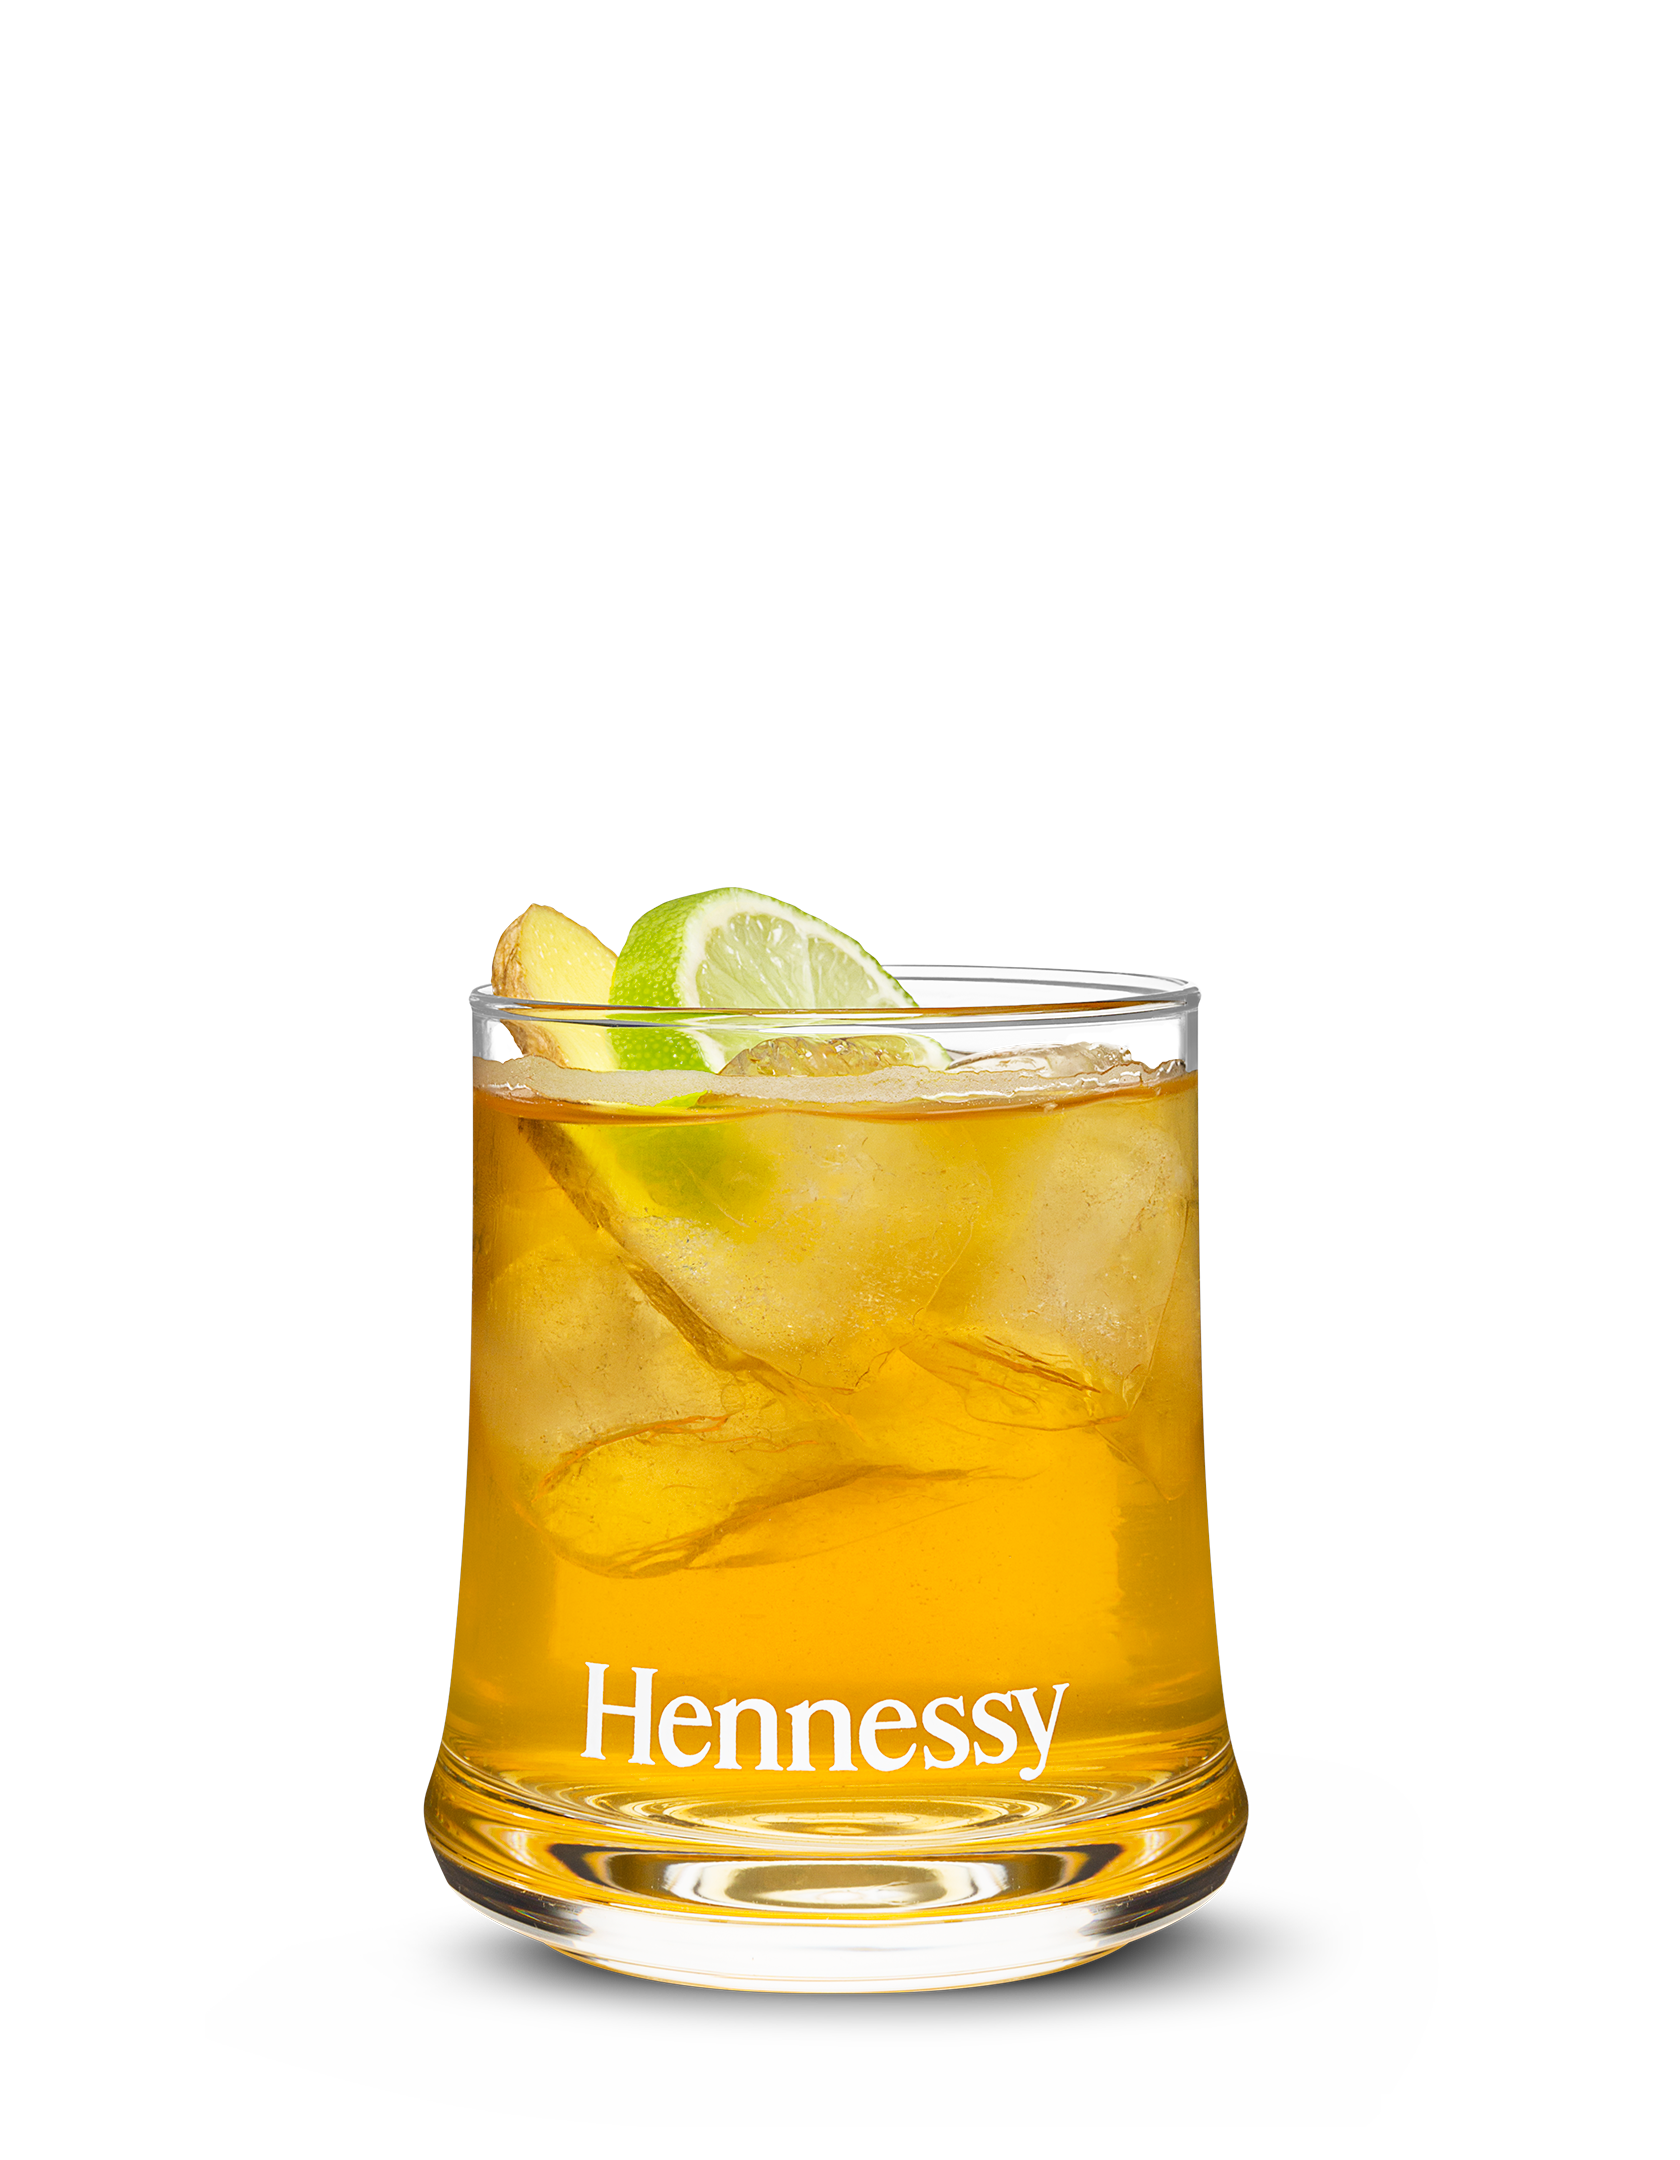 237-HENNESSY-MULE-SIMPL-RVB.png